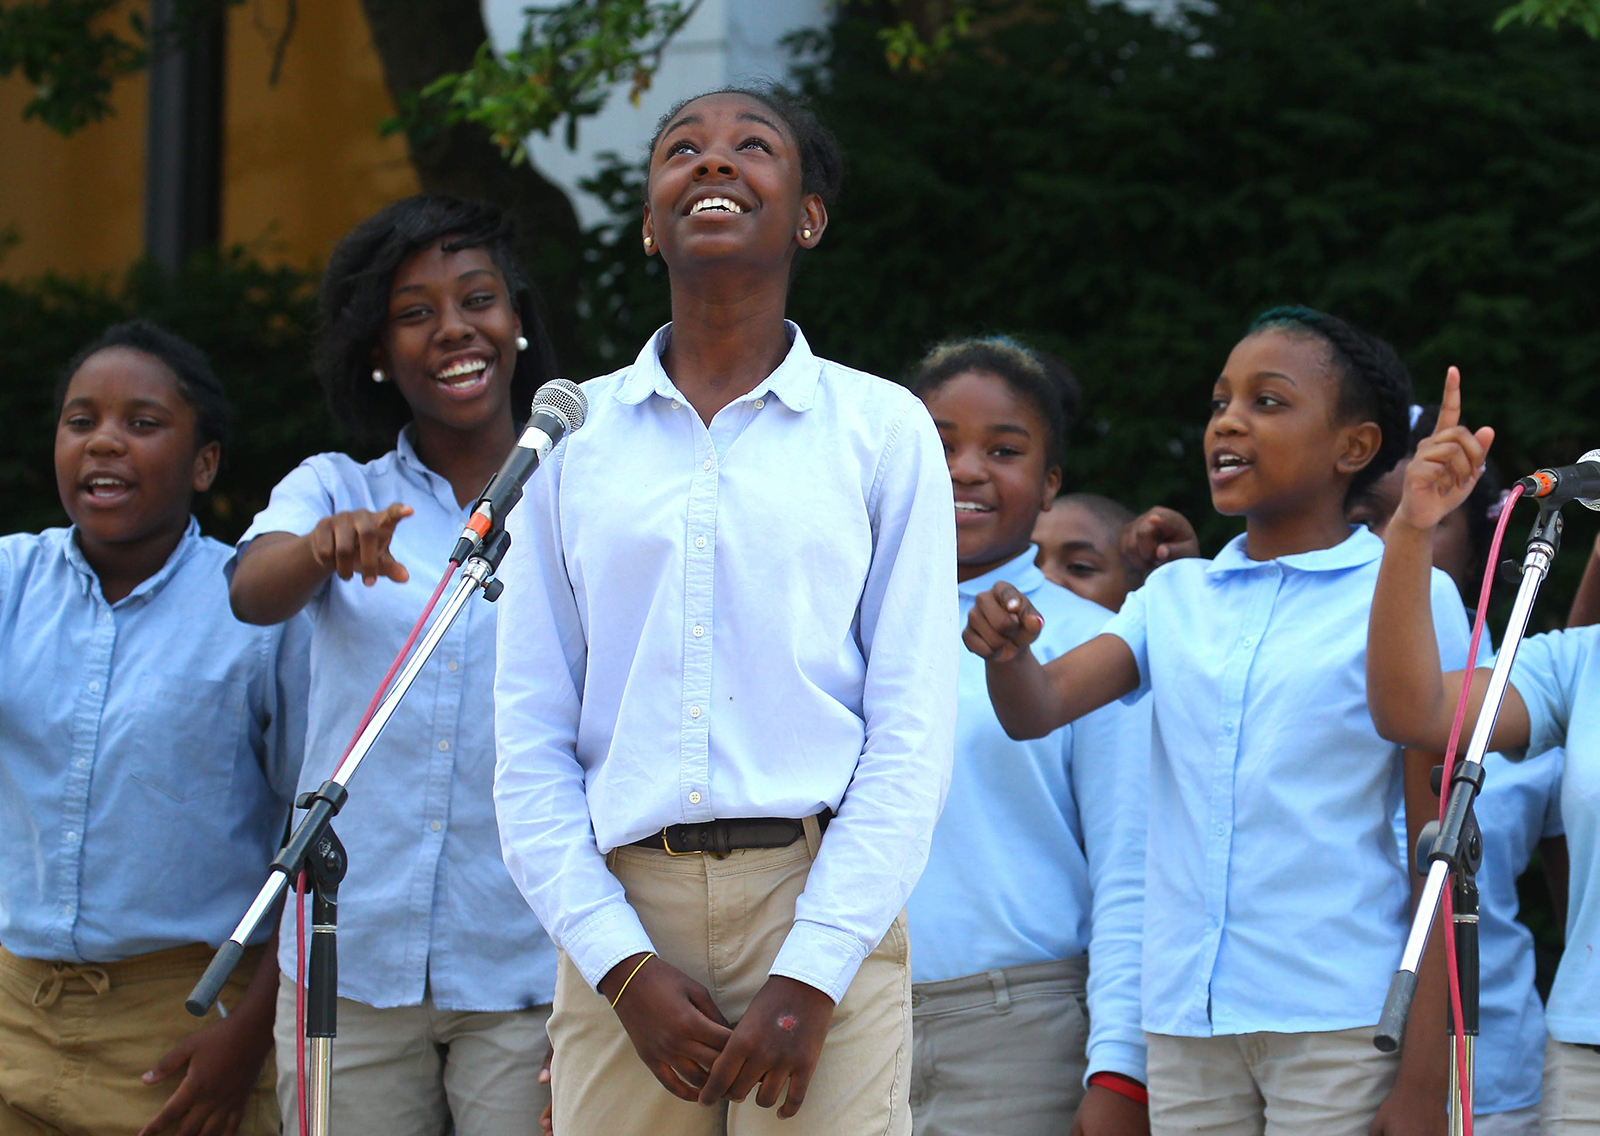 Timzania Chatman, center, and the Westminster Community Charter School Chorus performs during the M&T Bank Summer Concert Series at Fountain Plaza in Buffalo Tuesday, June 14, 2016. The chorus was doing selections from Beauty and the Beast. (Mark Mulville/Buffalo News)